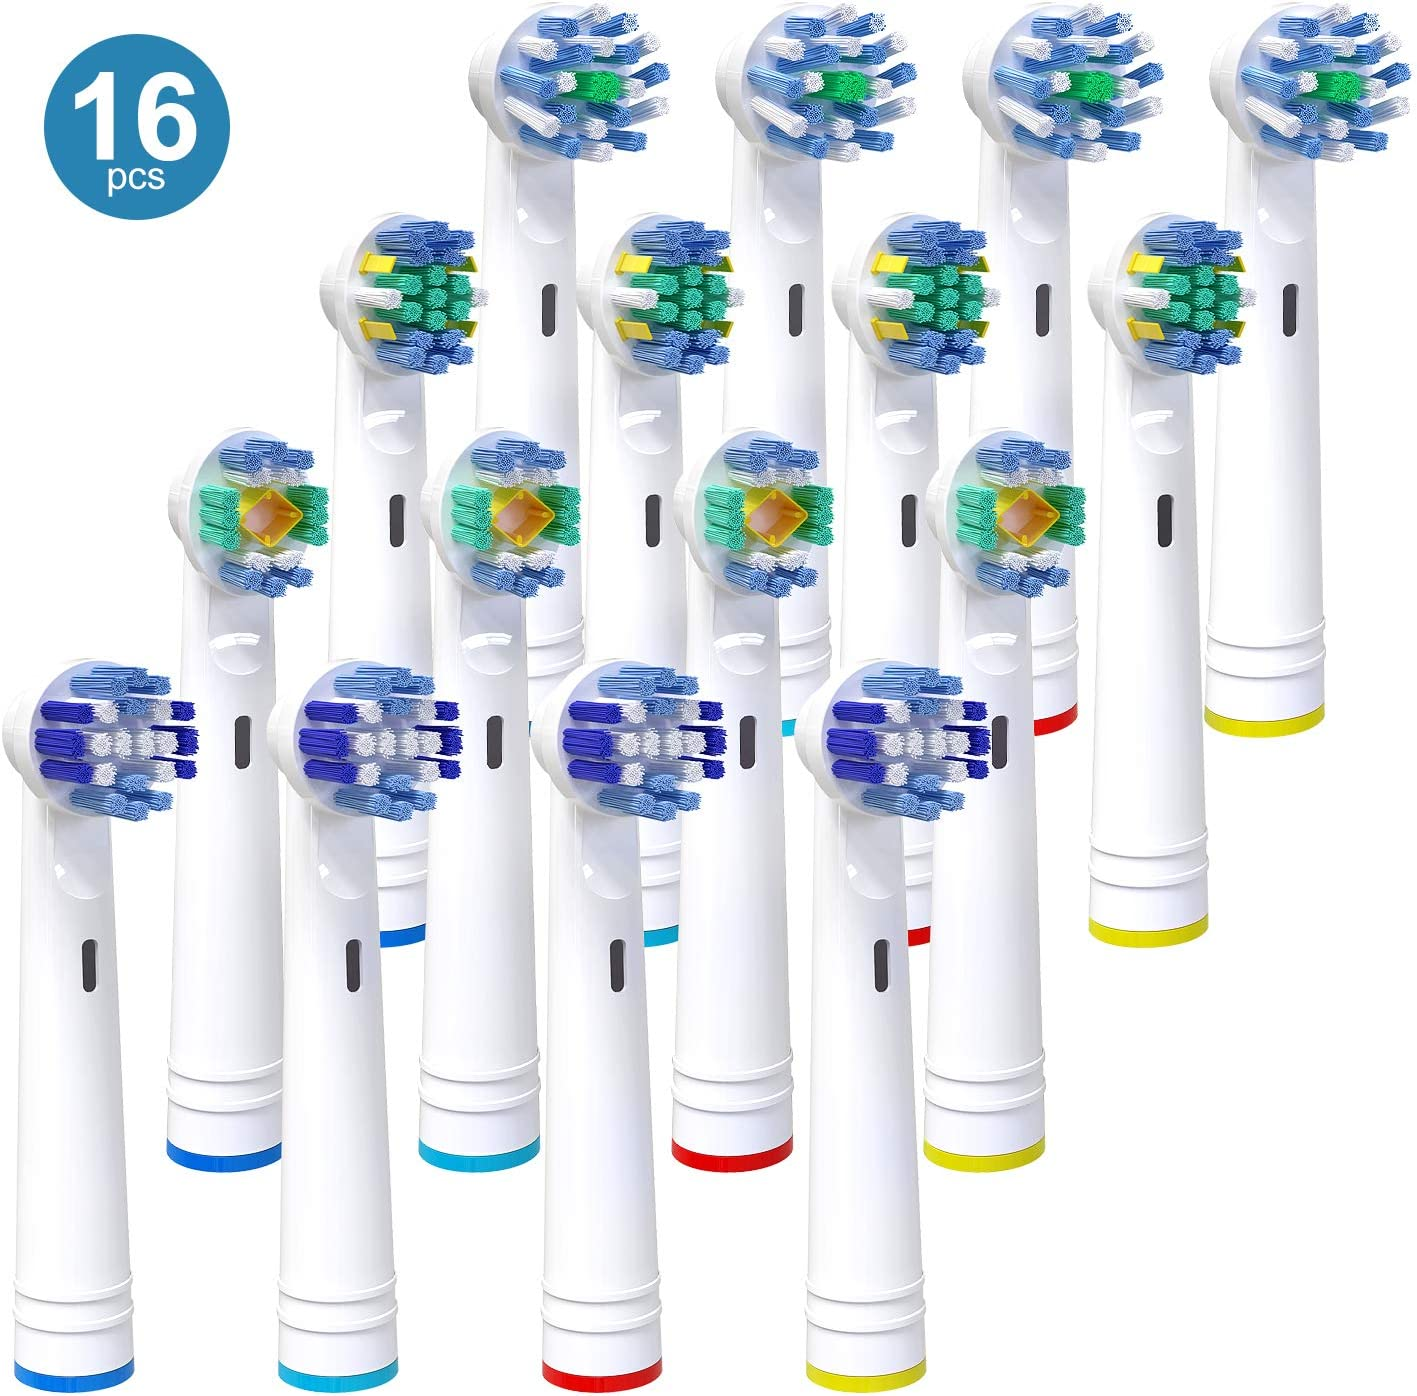 Replacement Brush Heads for Oral B, 16 Pack Electric Toothbrush Heads Compatible with Oral B Pro 3000 Pro 5000 Pro 7000, Includes 4 Precision Clean, 4 Floss Action, 4 Cross Action & 4 3D Whitening